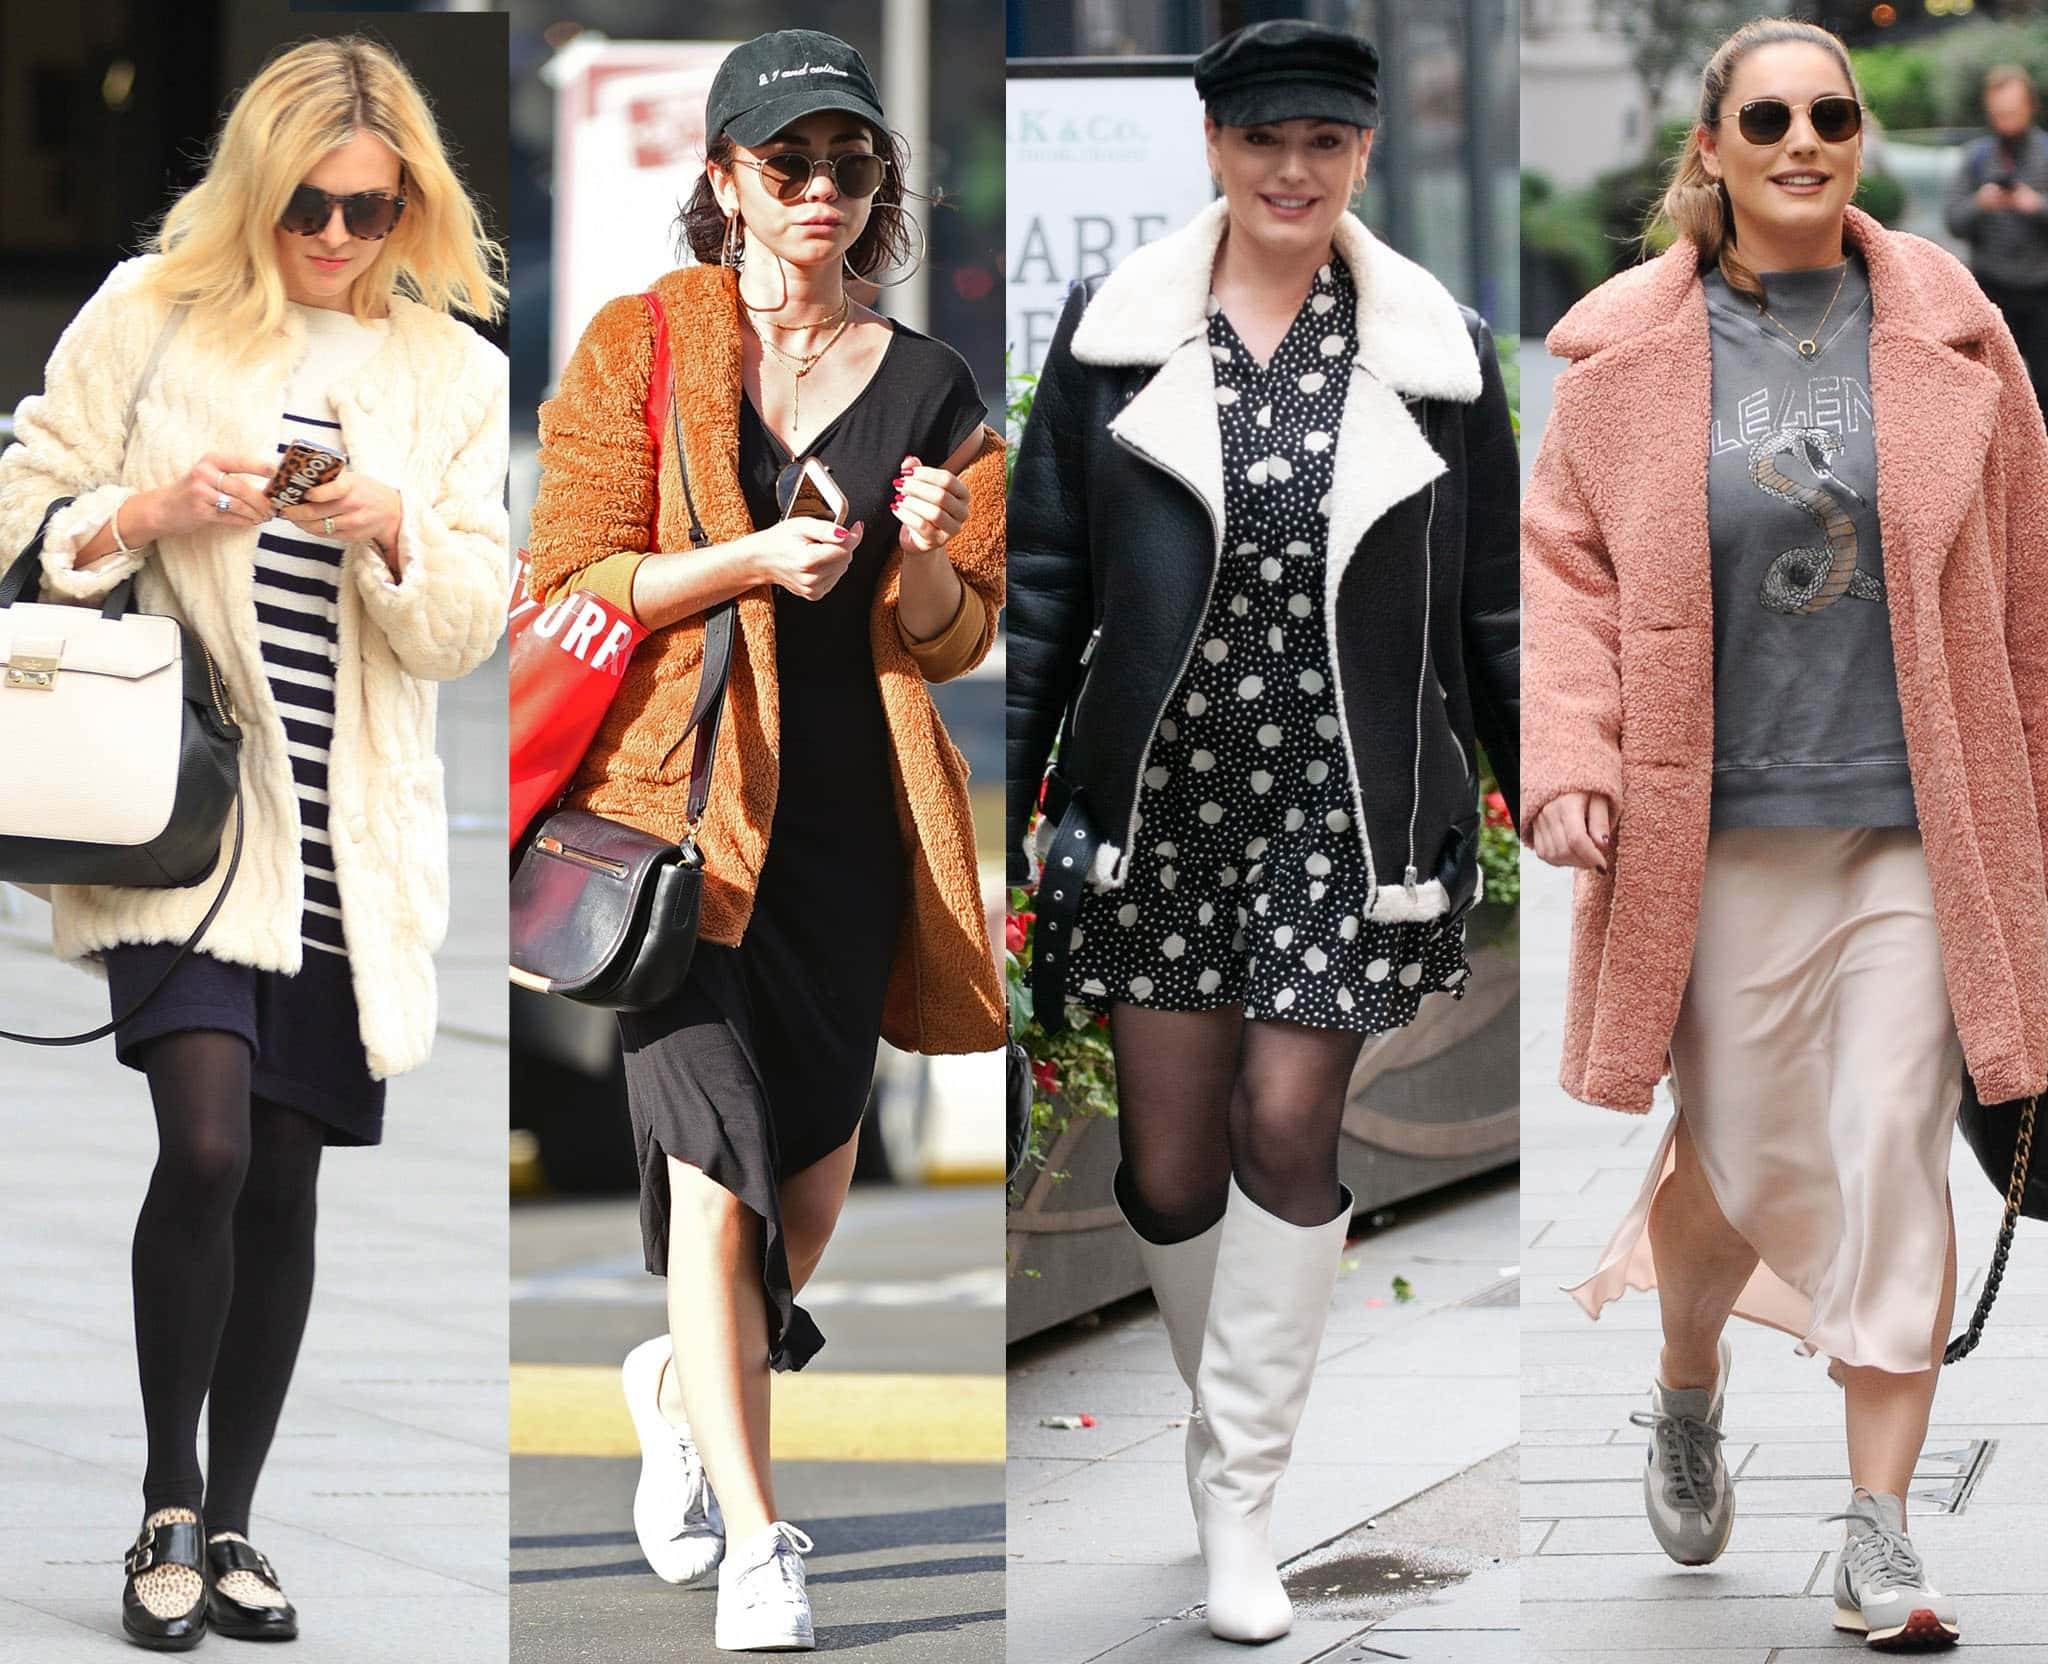 Fearne Cotton, Sarah Hyland, and Kelly Brook style their fleece jackets with dresses